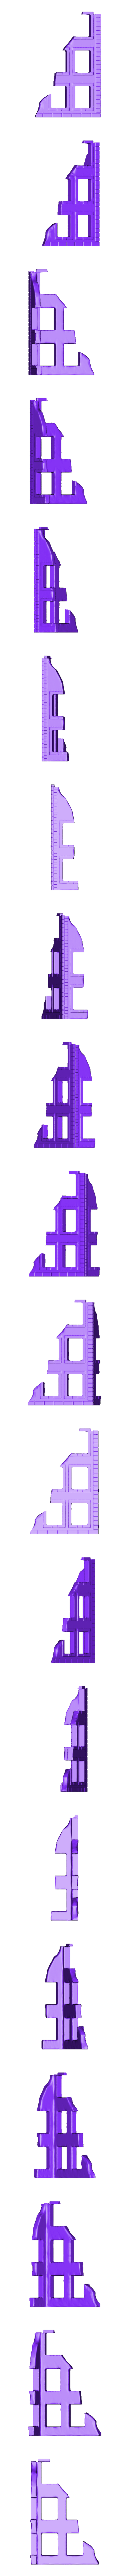 mur ruine 2020 v5.stl Download free STL file ruined house • 3D printing design, nicoco3D